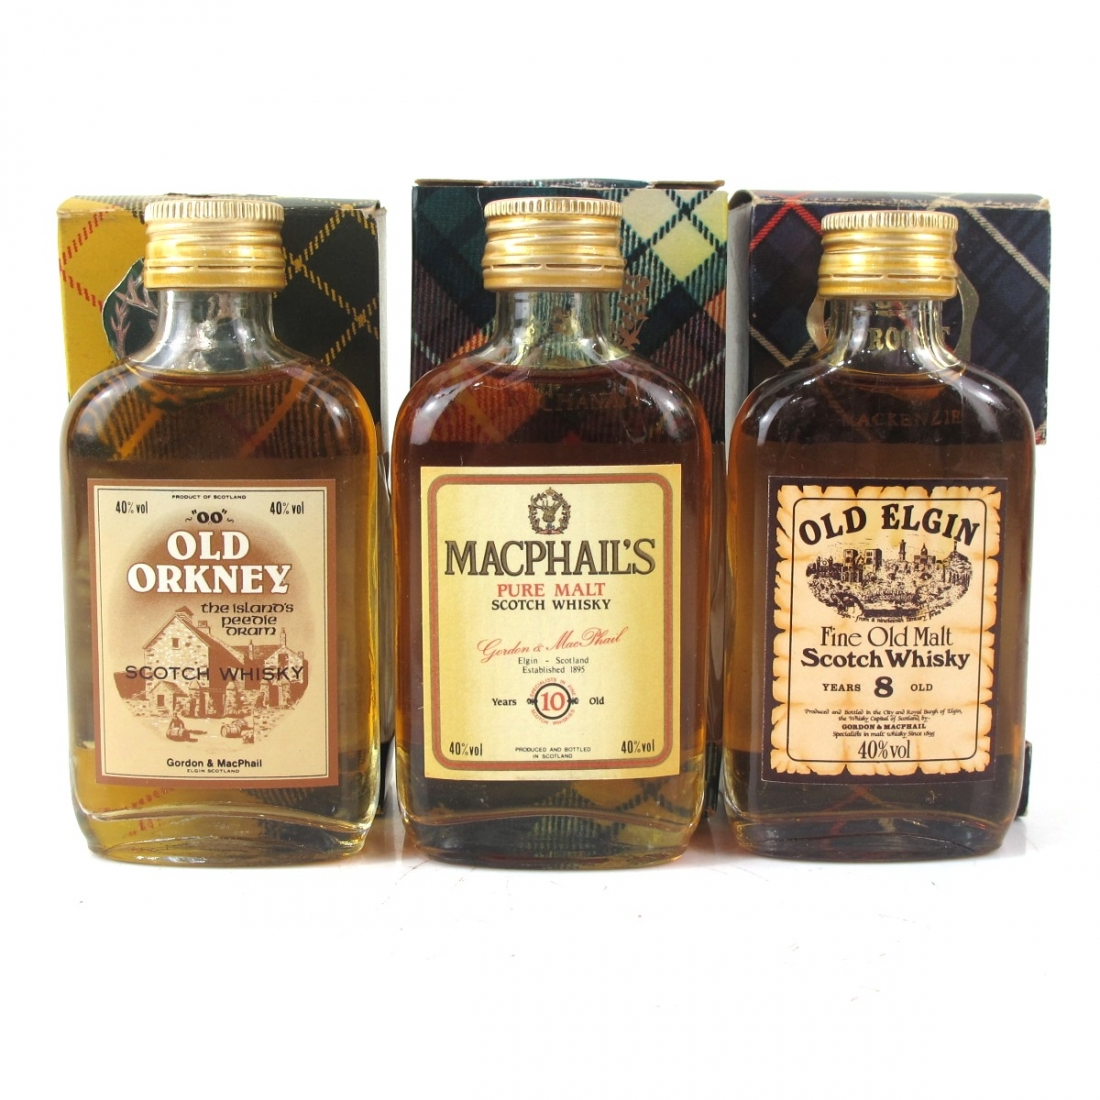 Miscellaneous Blended Gordon and MacPhail Miniatures x 3